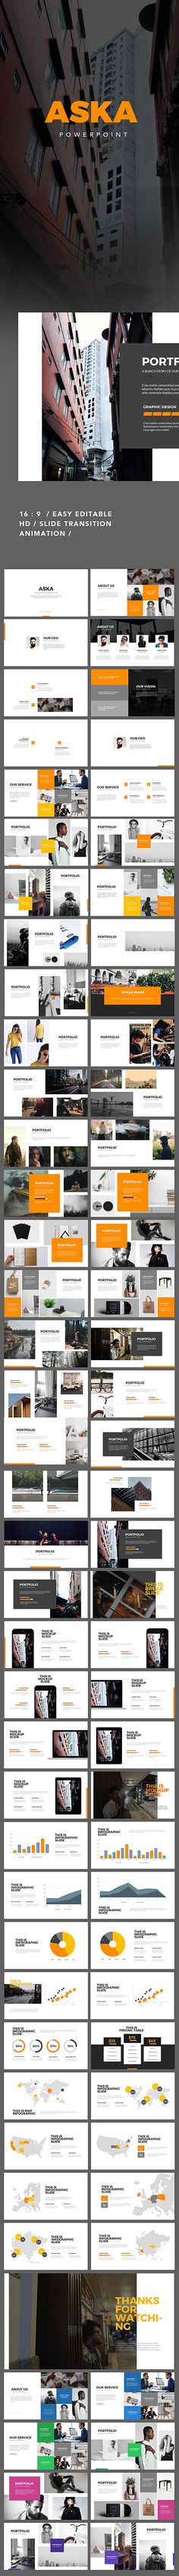 Aska Powerpoint Presentation - Creative PowerPoint Templates Download here: https://graphicriver.net/item/aska-powerpoint-presentation/19803417?ref=classicdesignp